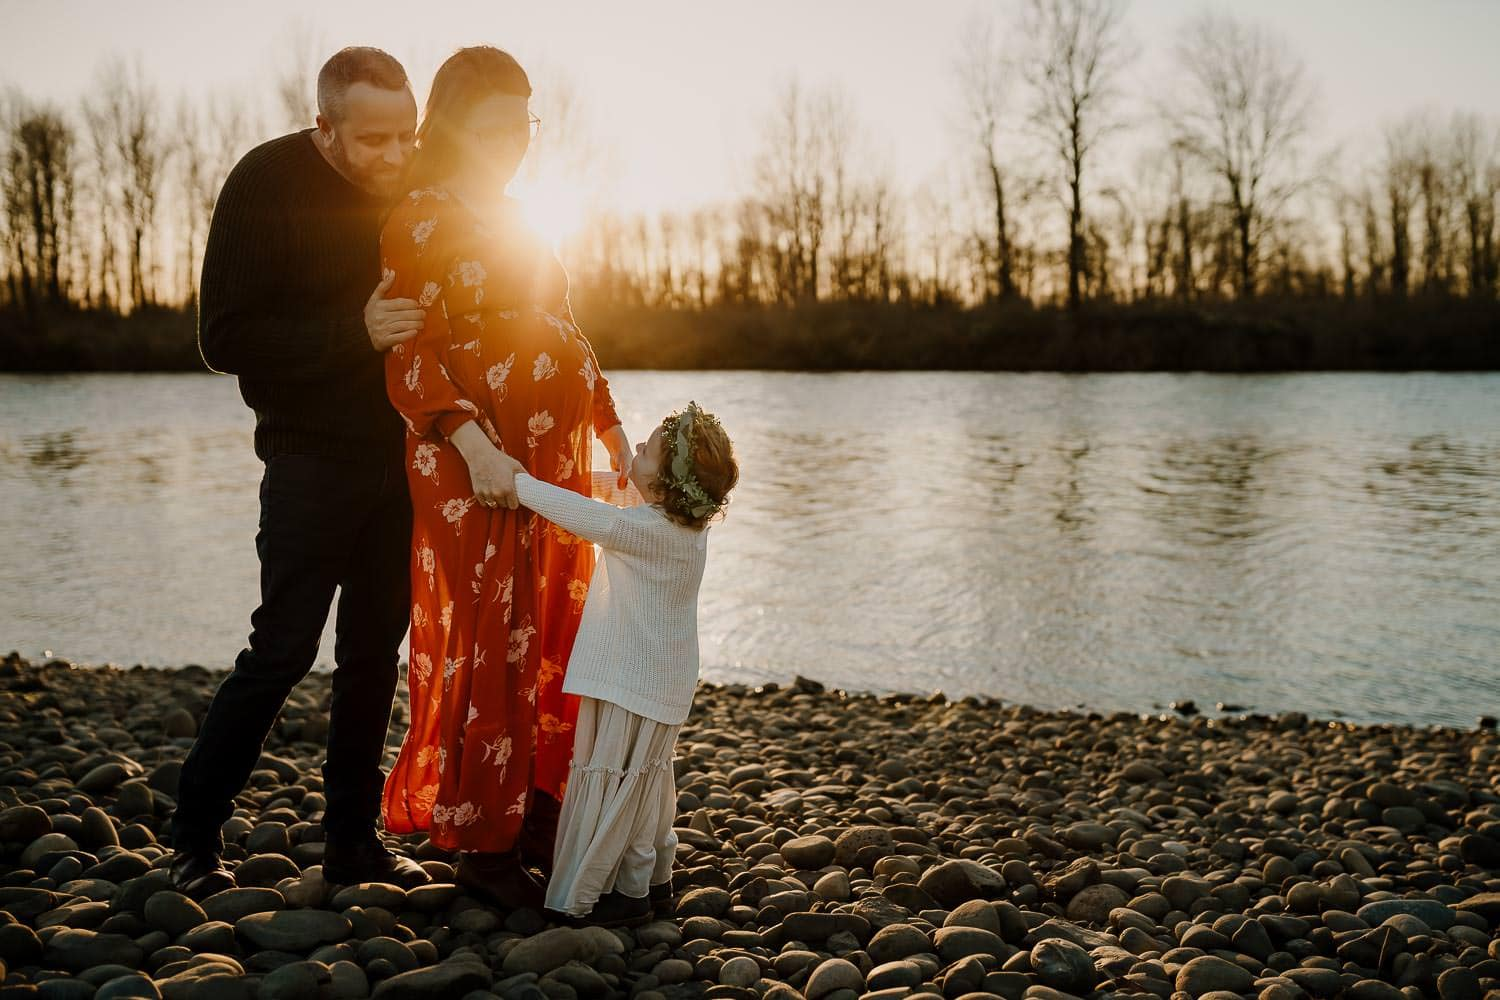 maternity photo of family by a river at sunset   how to start a photography business